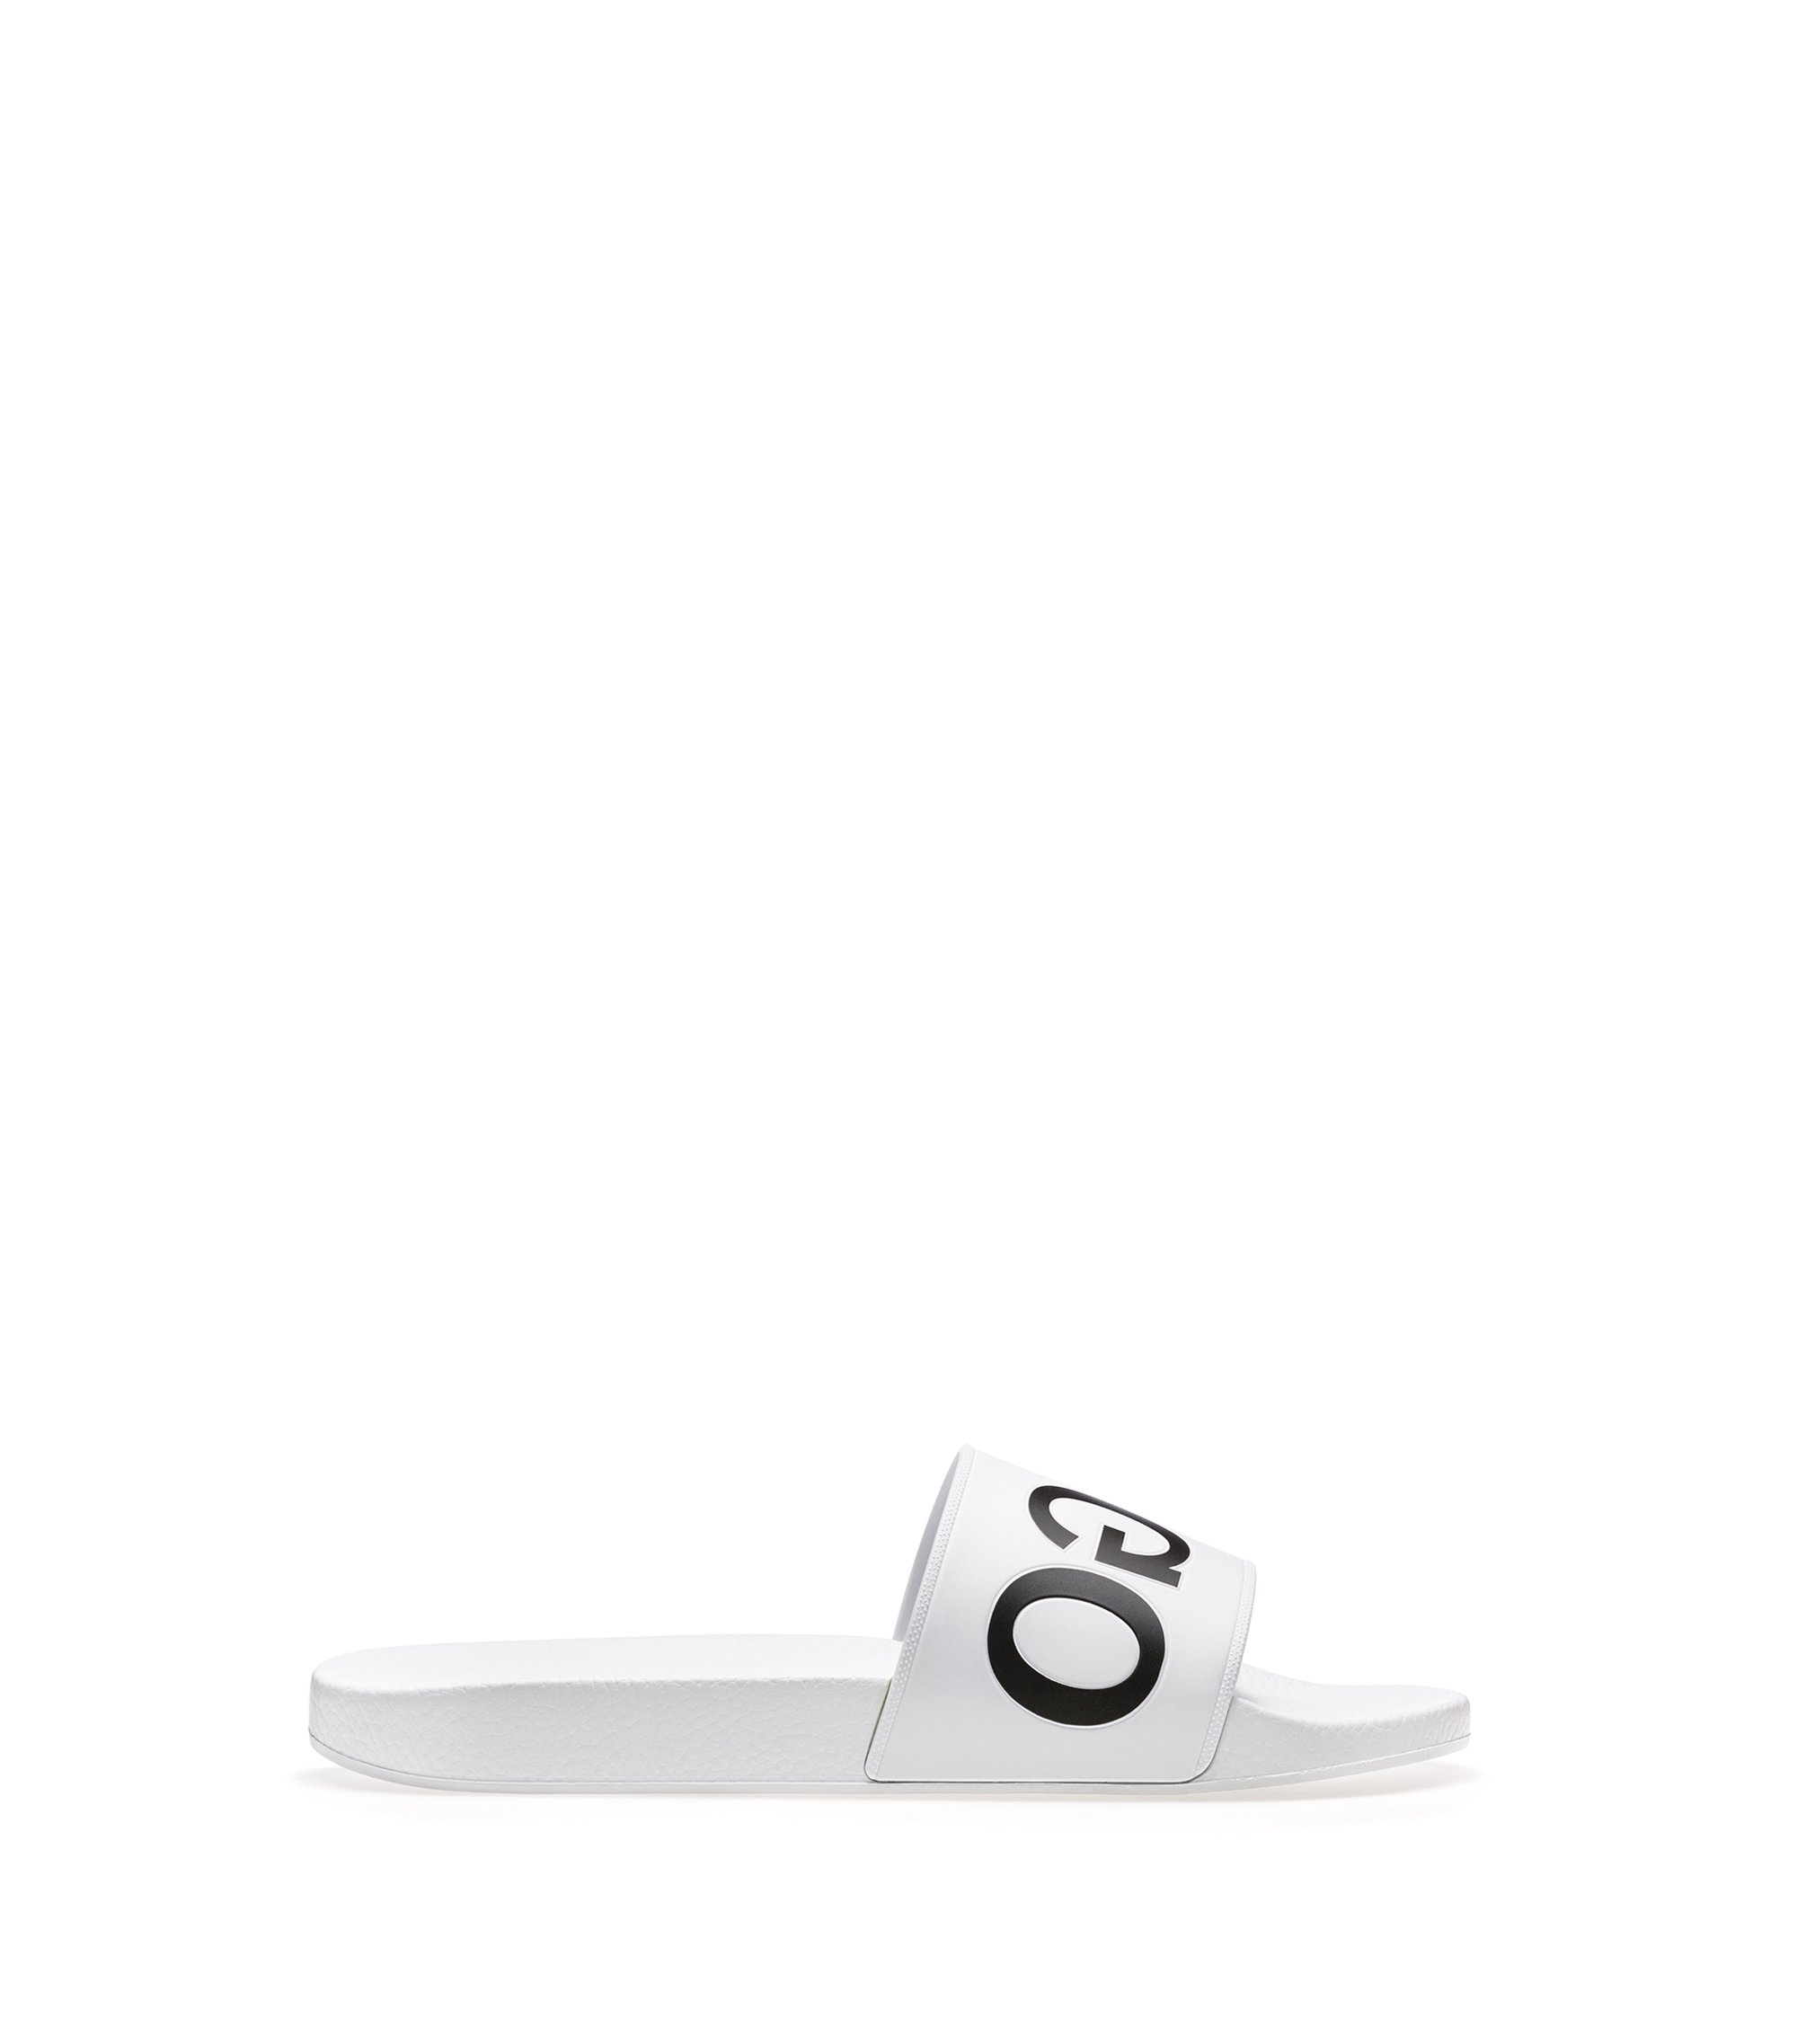 Chanclas de piscina con logo invertido, Blanco